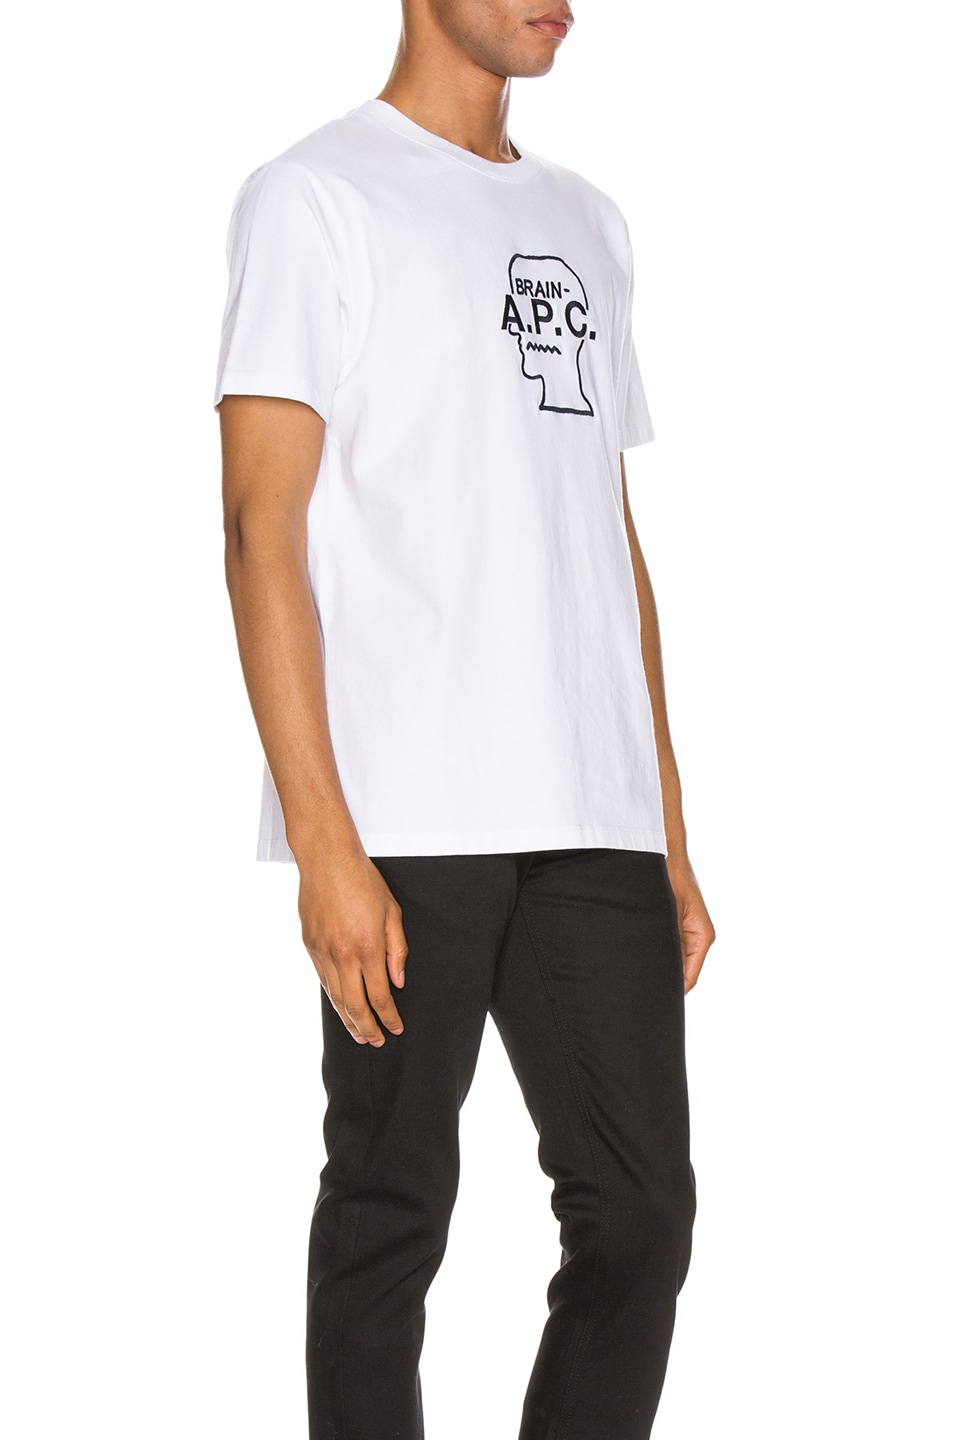 Image 2 of A.P.C. x Brain Dead Spooky T-Shirt in Blanc